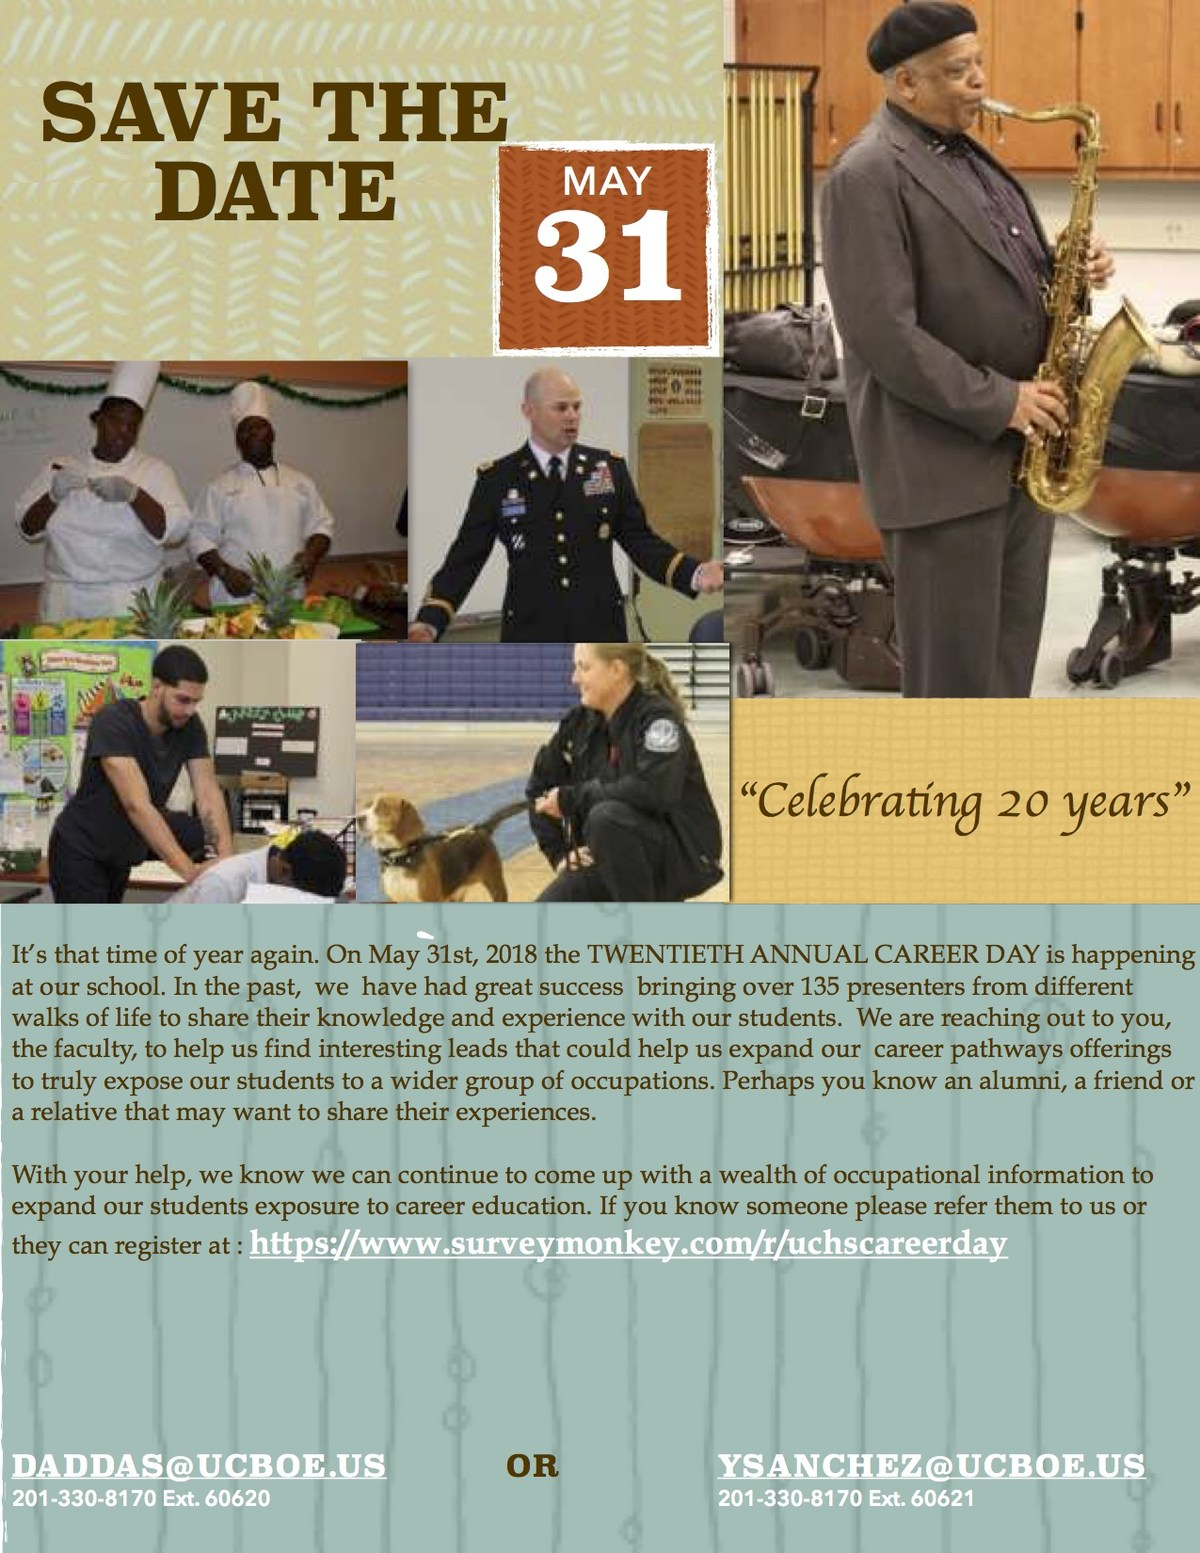 career Day Save the date flyer